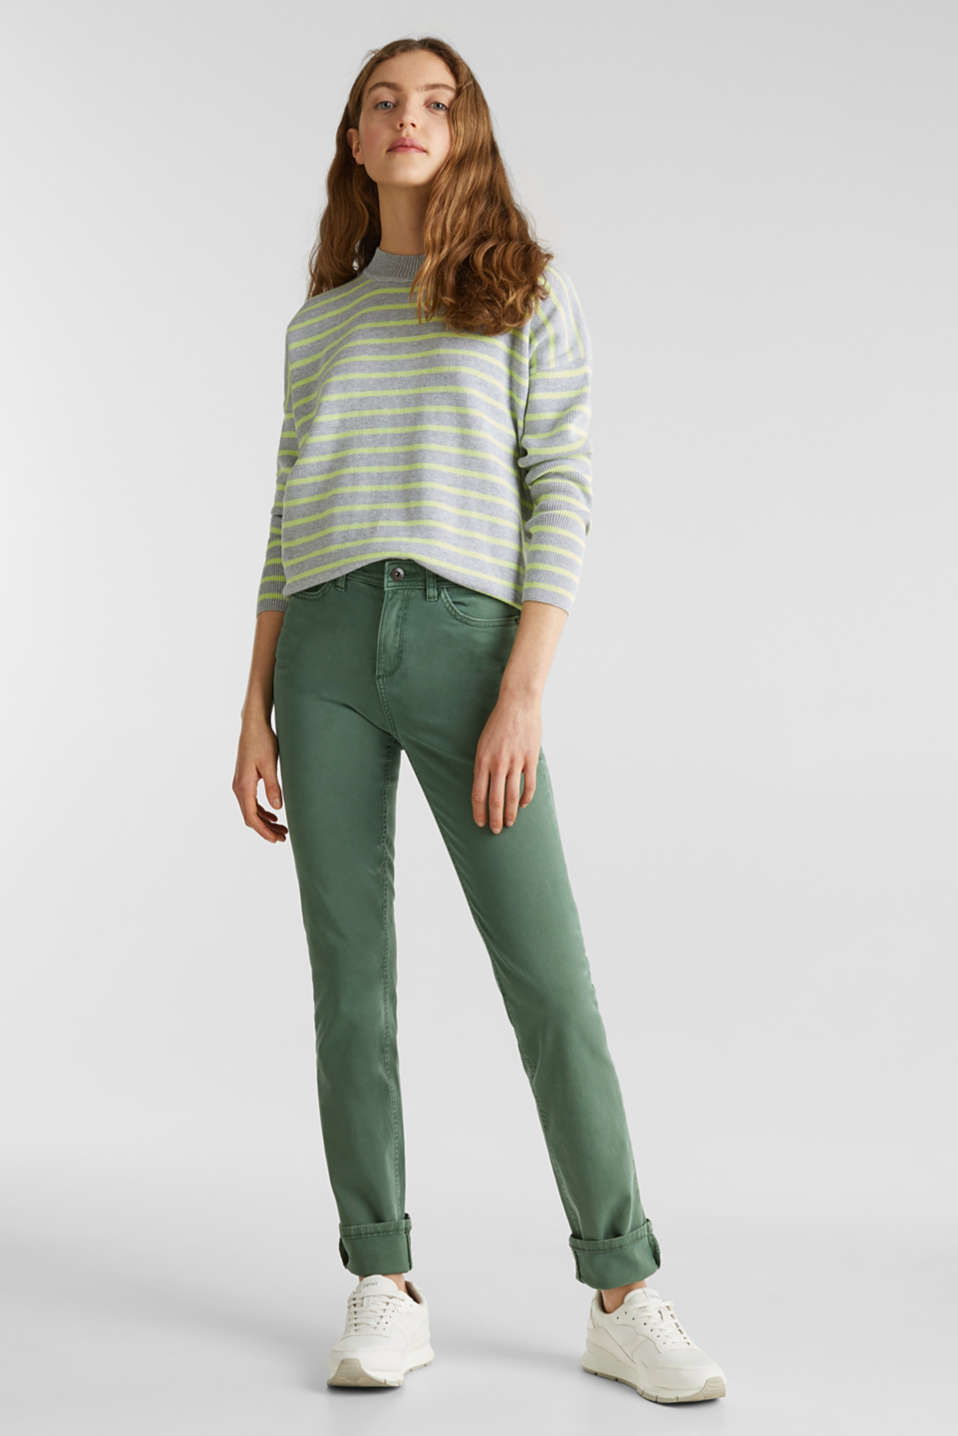 Washed-effect stretch trousers, KHAKI GREEN, detail image number 1